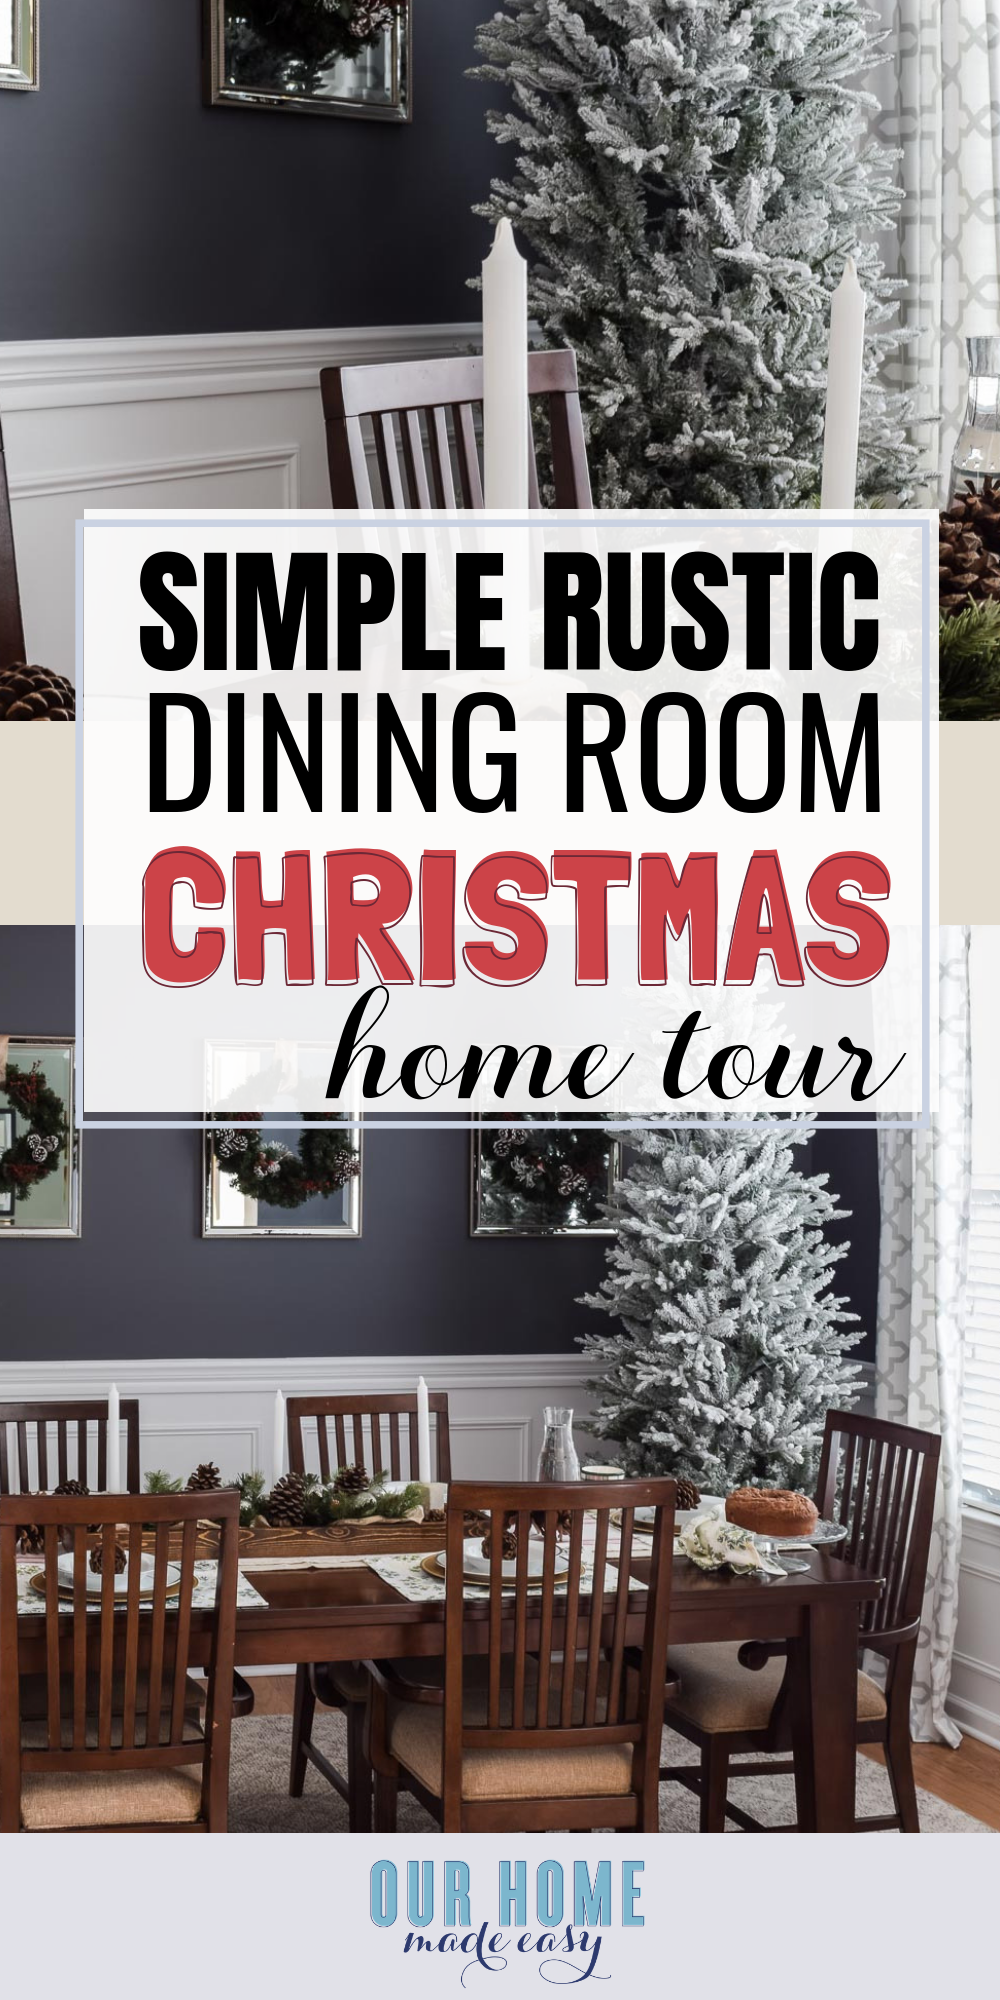 Simple Christmas dining room decorations are ready for Christmas morning! Come on in and join us for a pretty dining room home tour! #Christmas #homedecor #ourhomemadeeasy